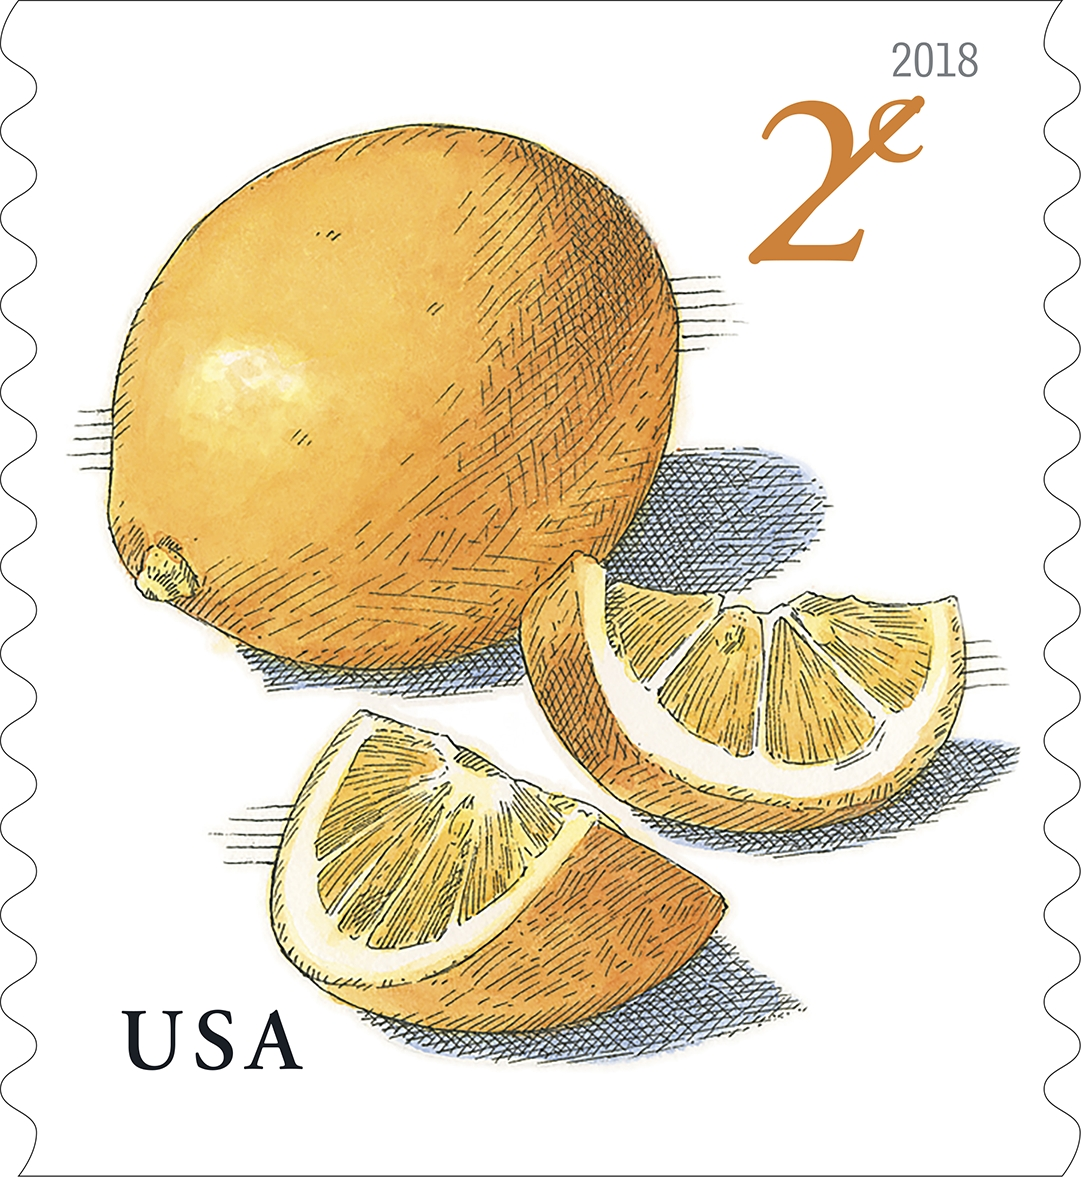 Meyer Lemons: Meyer Lemons is a 2-cent definitive stamp. The stamp art features a whole Meyer lemon next to two wedges of the cut fruit. (USPS)